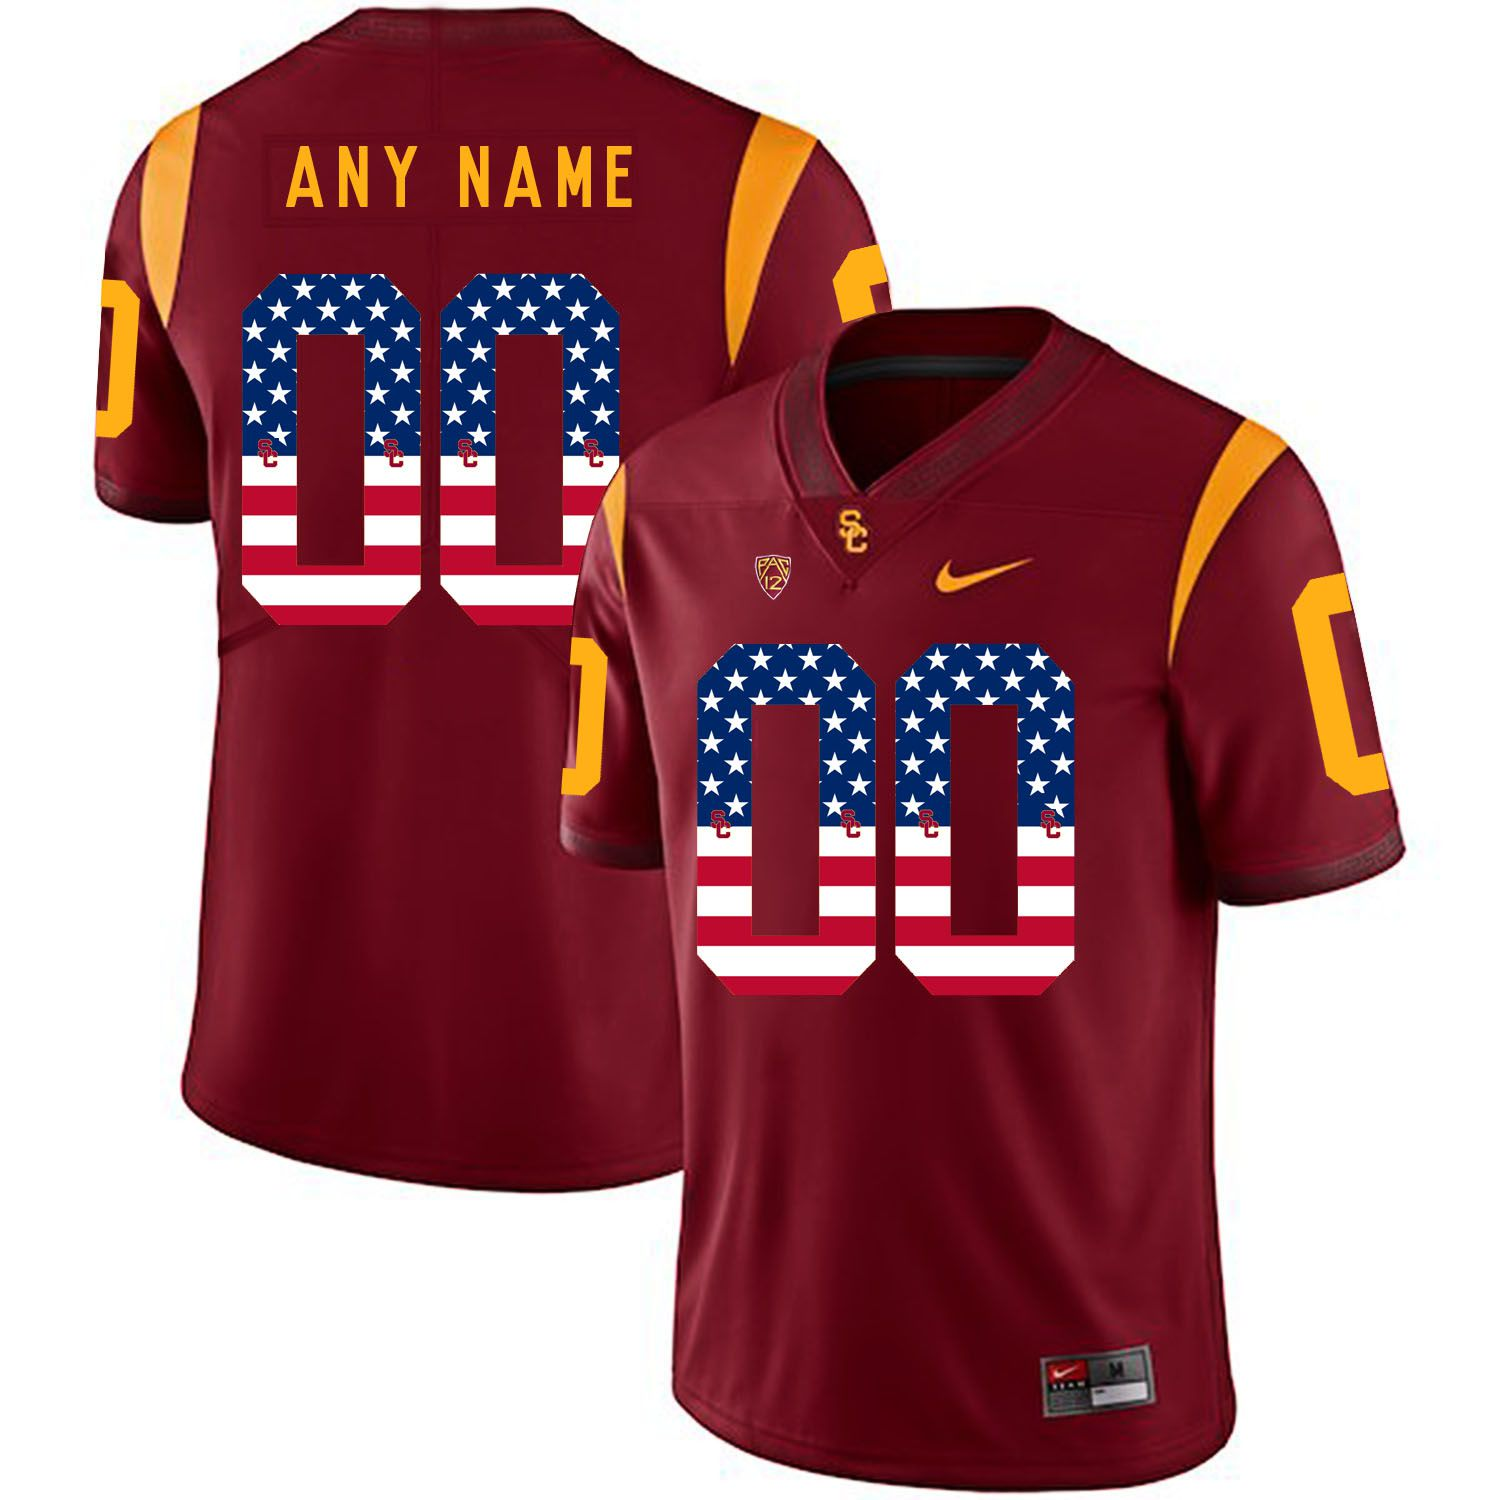 Men USC Trojans 00 Any Name Red Flag Customized NCAA Jerseys